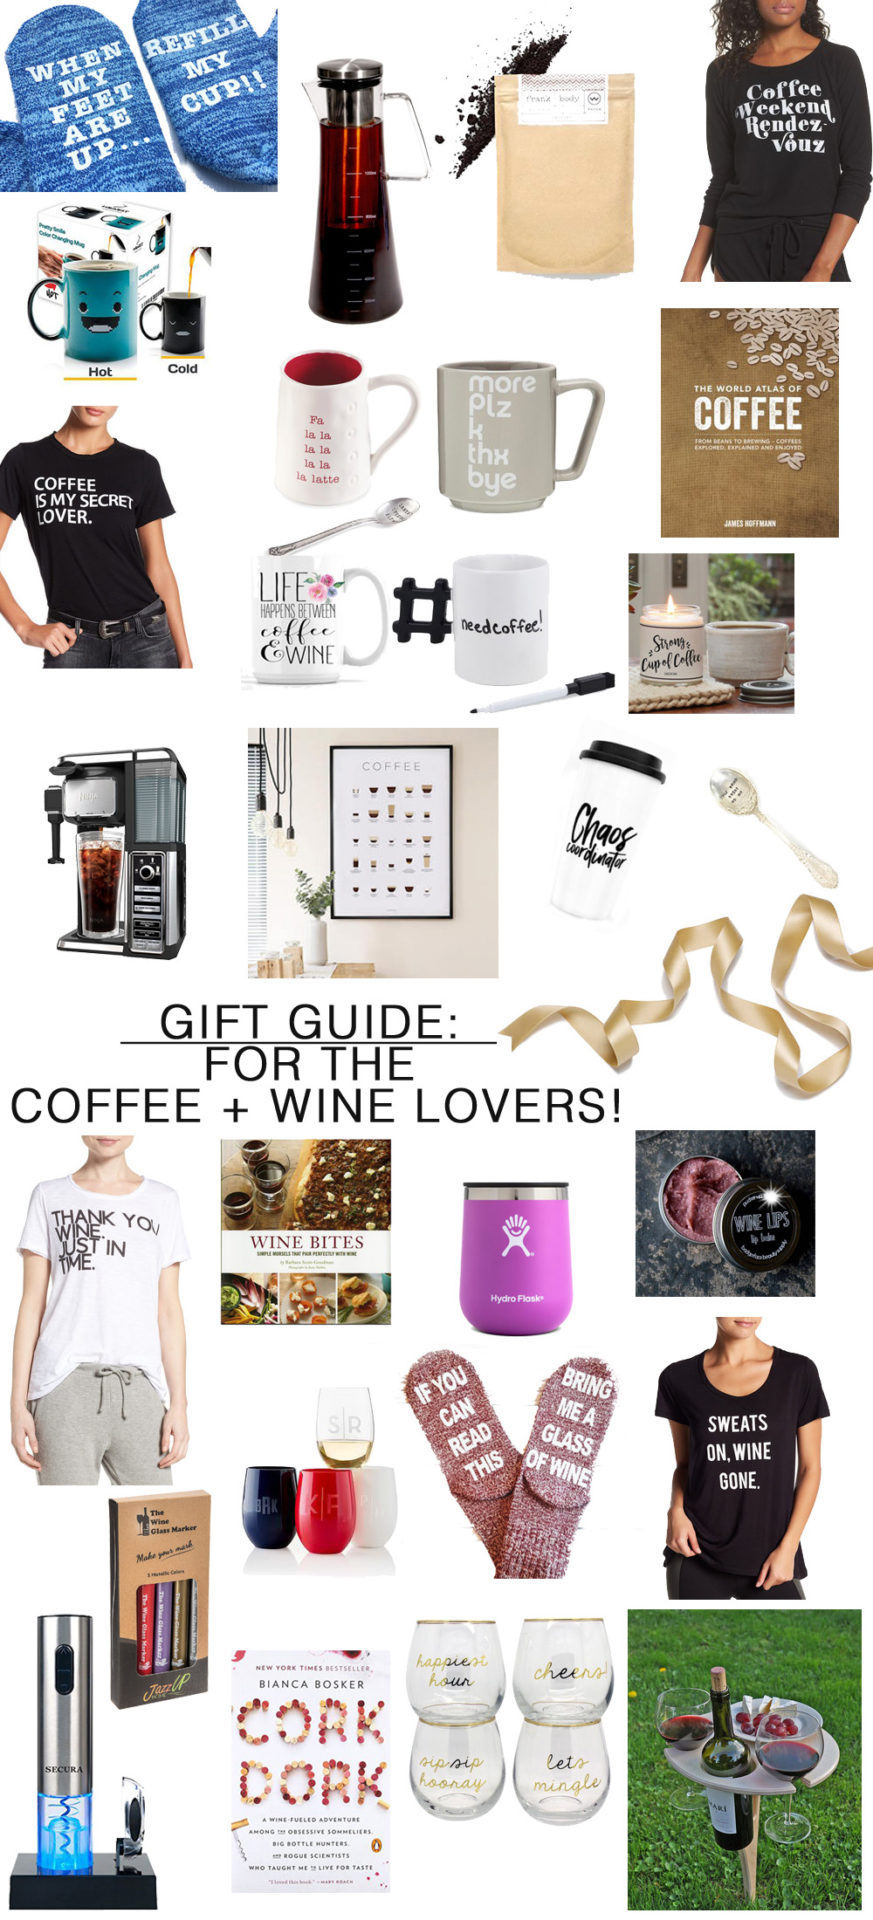 Awesome gift ideas for the coffee & wine lovers